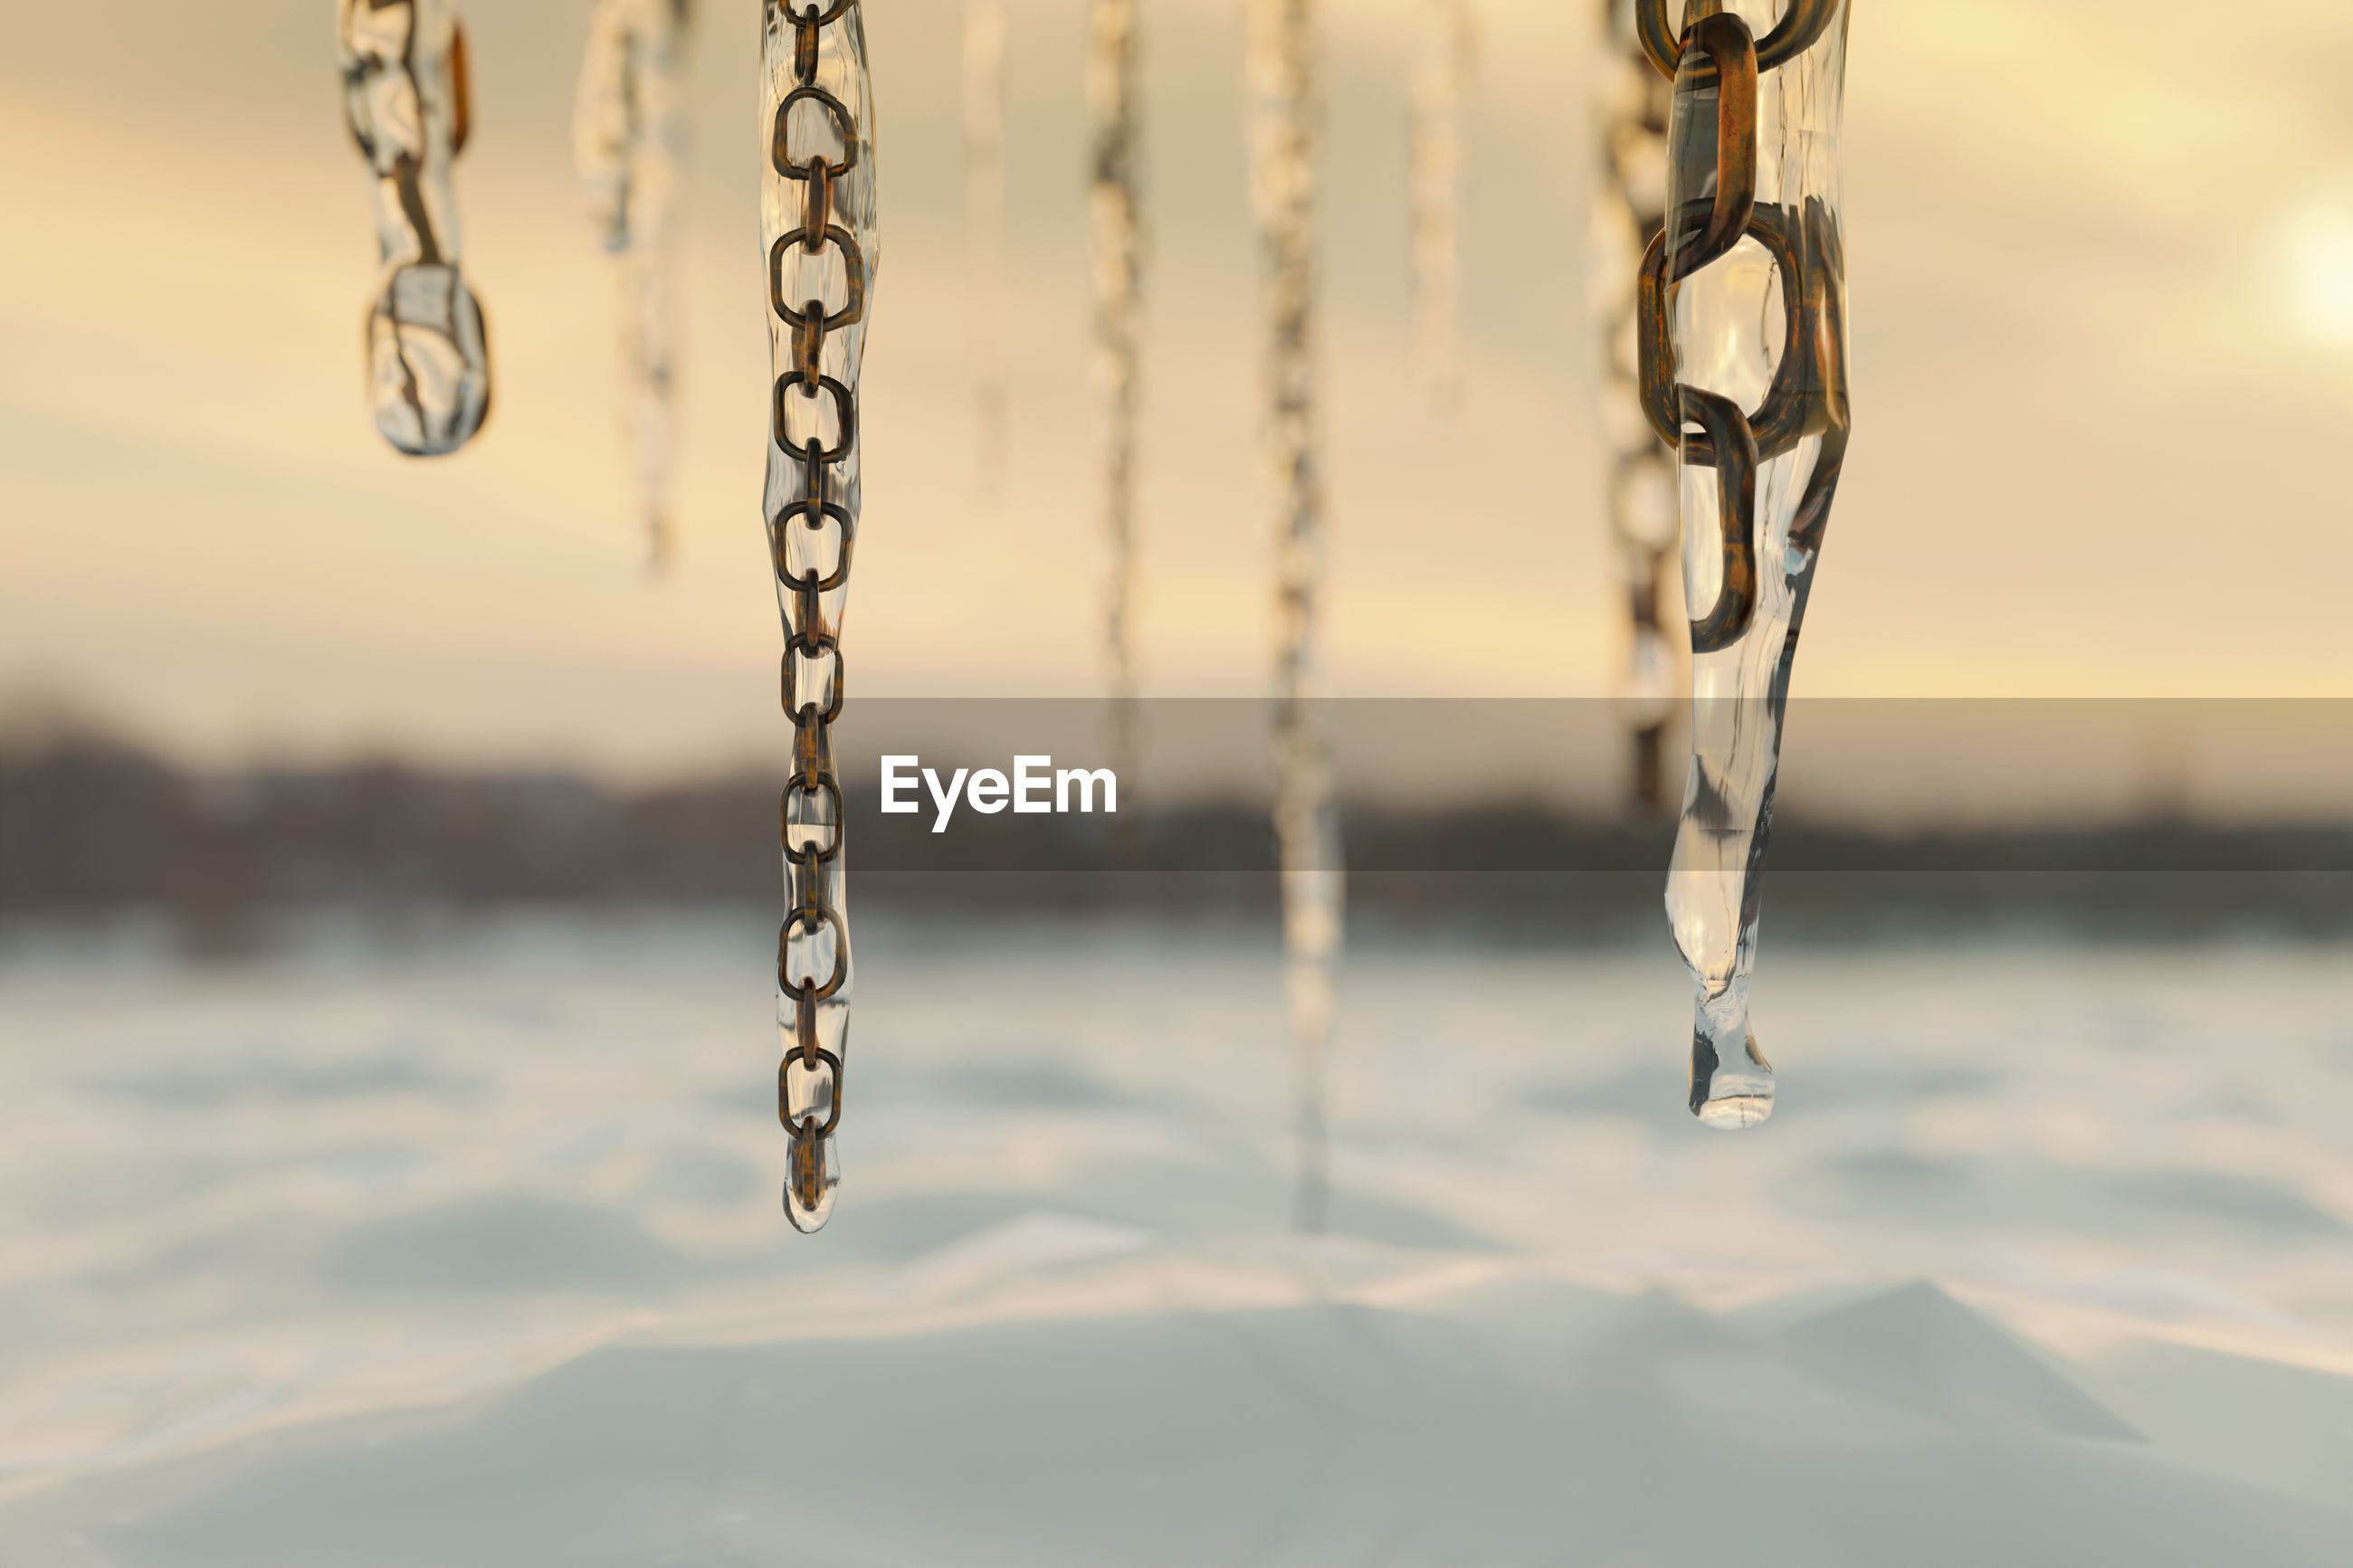 CLOSE-UP OF SWING HANGING ON WATER